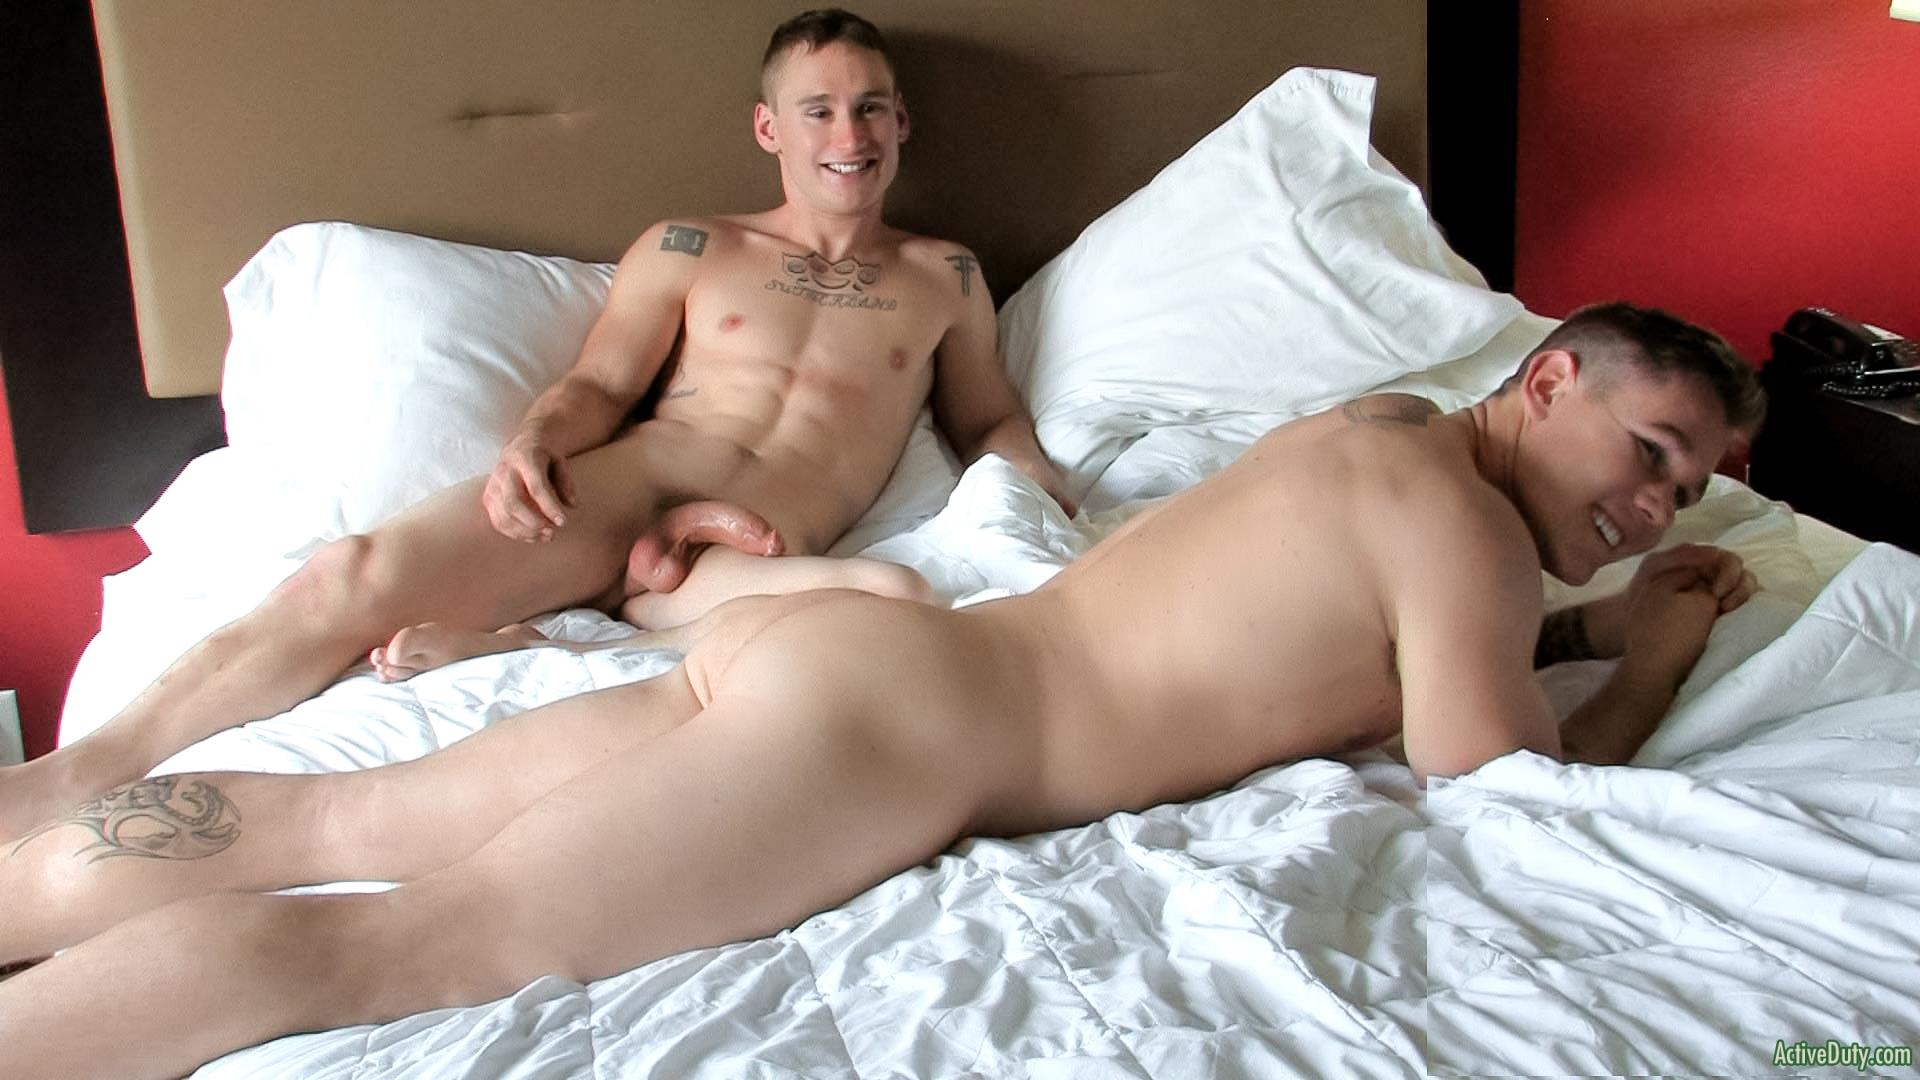 Active-Duty-Randy-and-Tim-Straight-Army-Guys-Fucking-Muscle-Cock-Amateur-Gay-Porn-15 Straight Muscle Army Guy Takes A Big Cock Up The Ass For The First Time